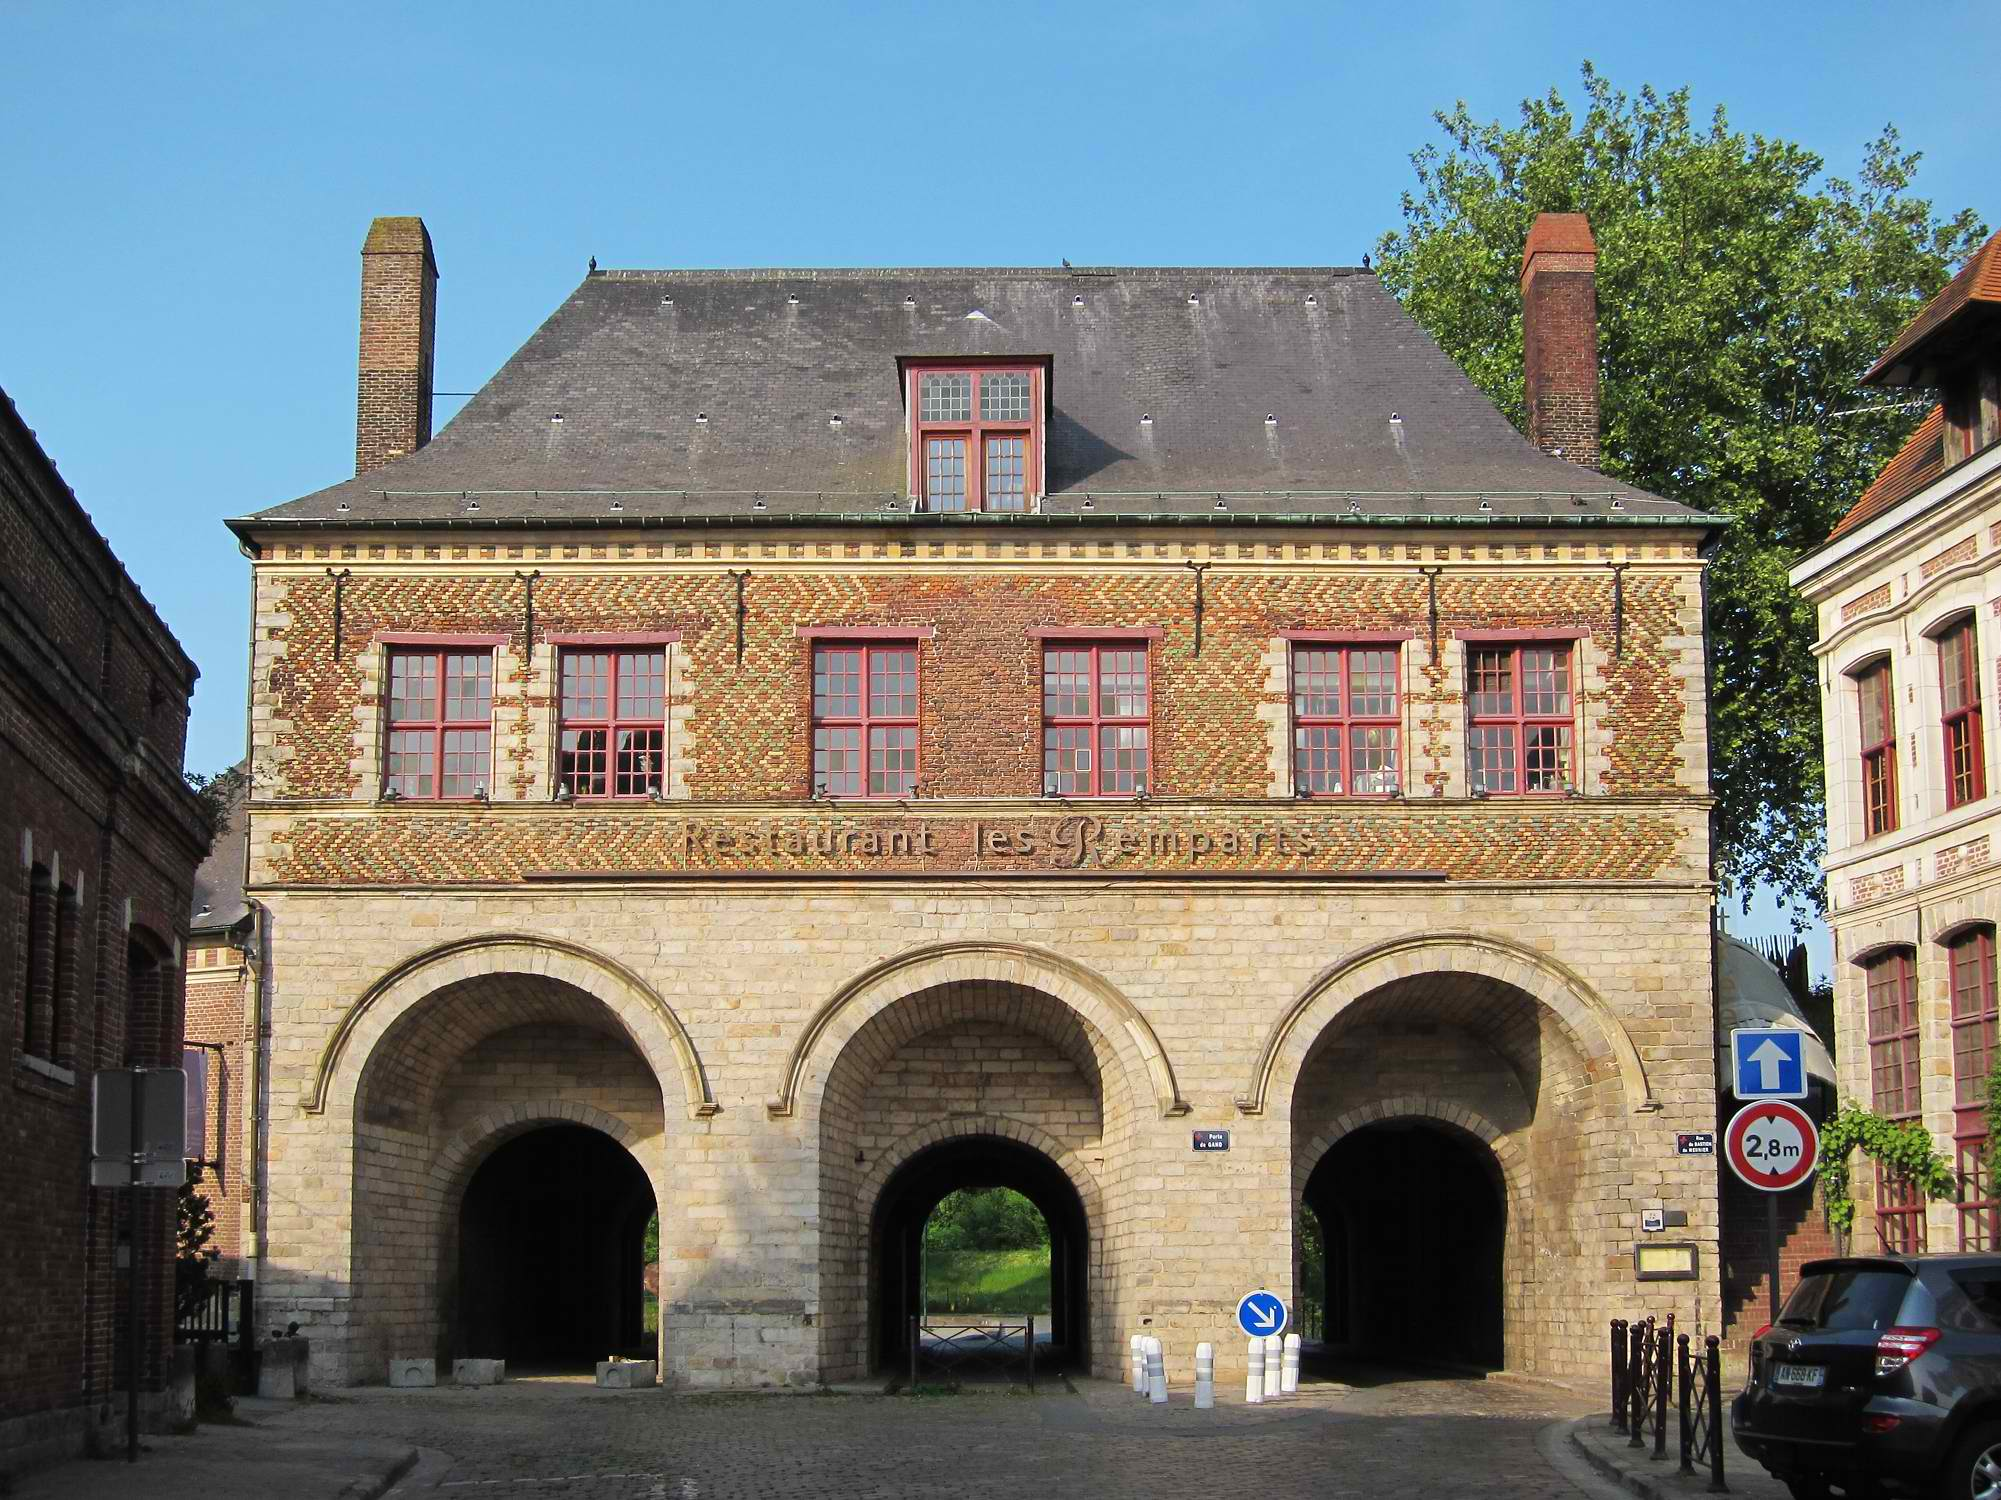 Porte de Roubaix (from the inner side) © Velvet - licence [CC BY-SA 3.0] from Wikimedia Commons